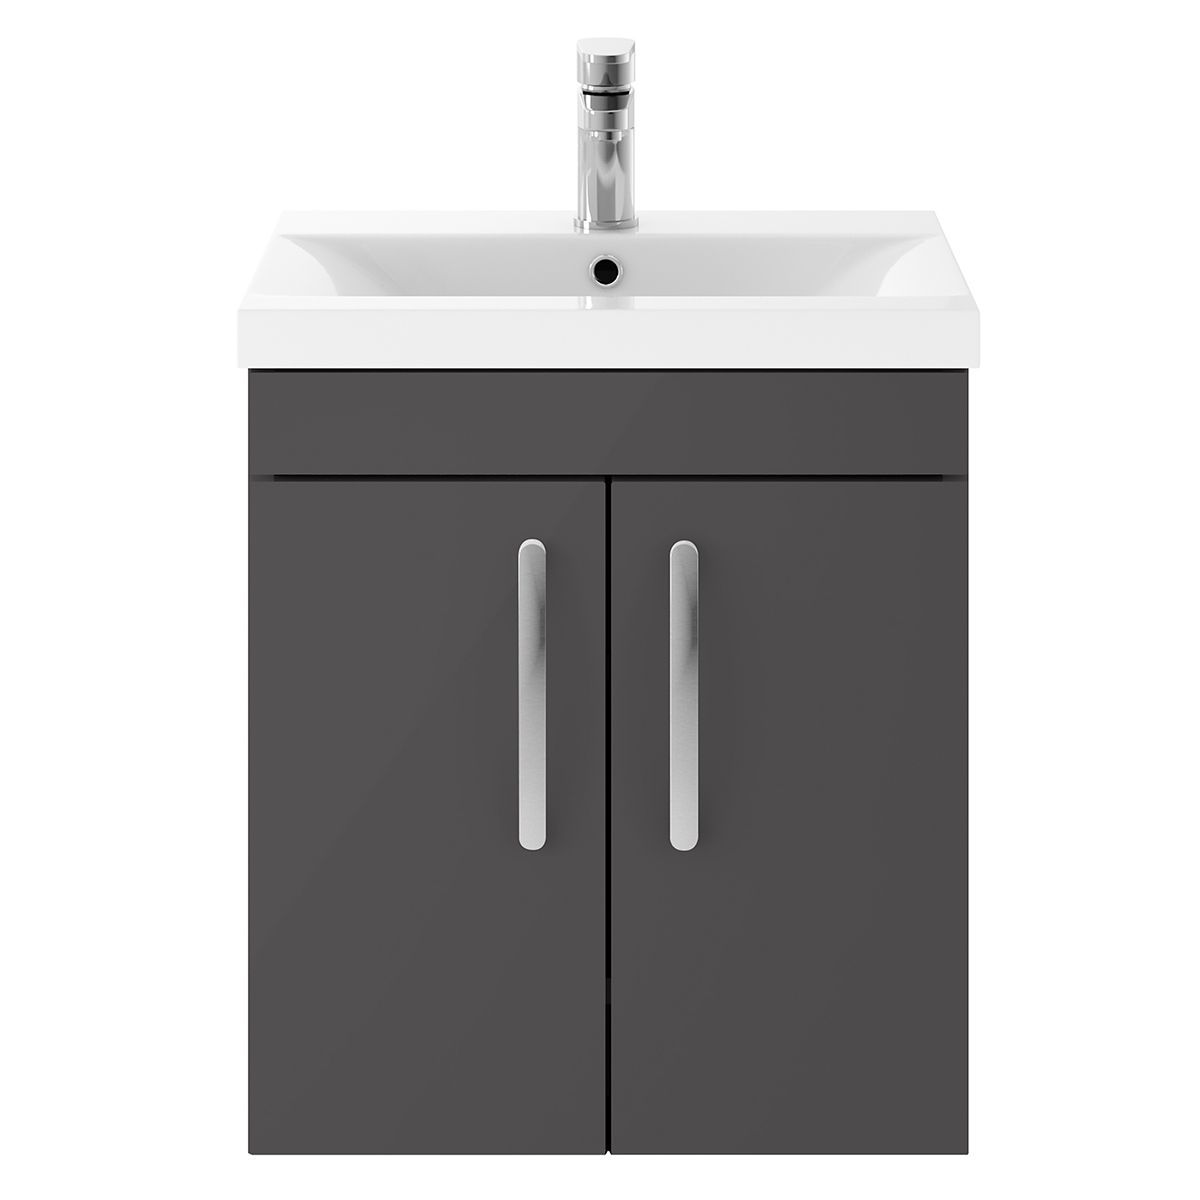 Nuie Athena Gloss Grey 2 Door Wall Hung Unit 500mm with Mid Edge Basin